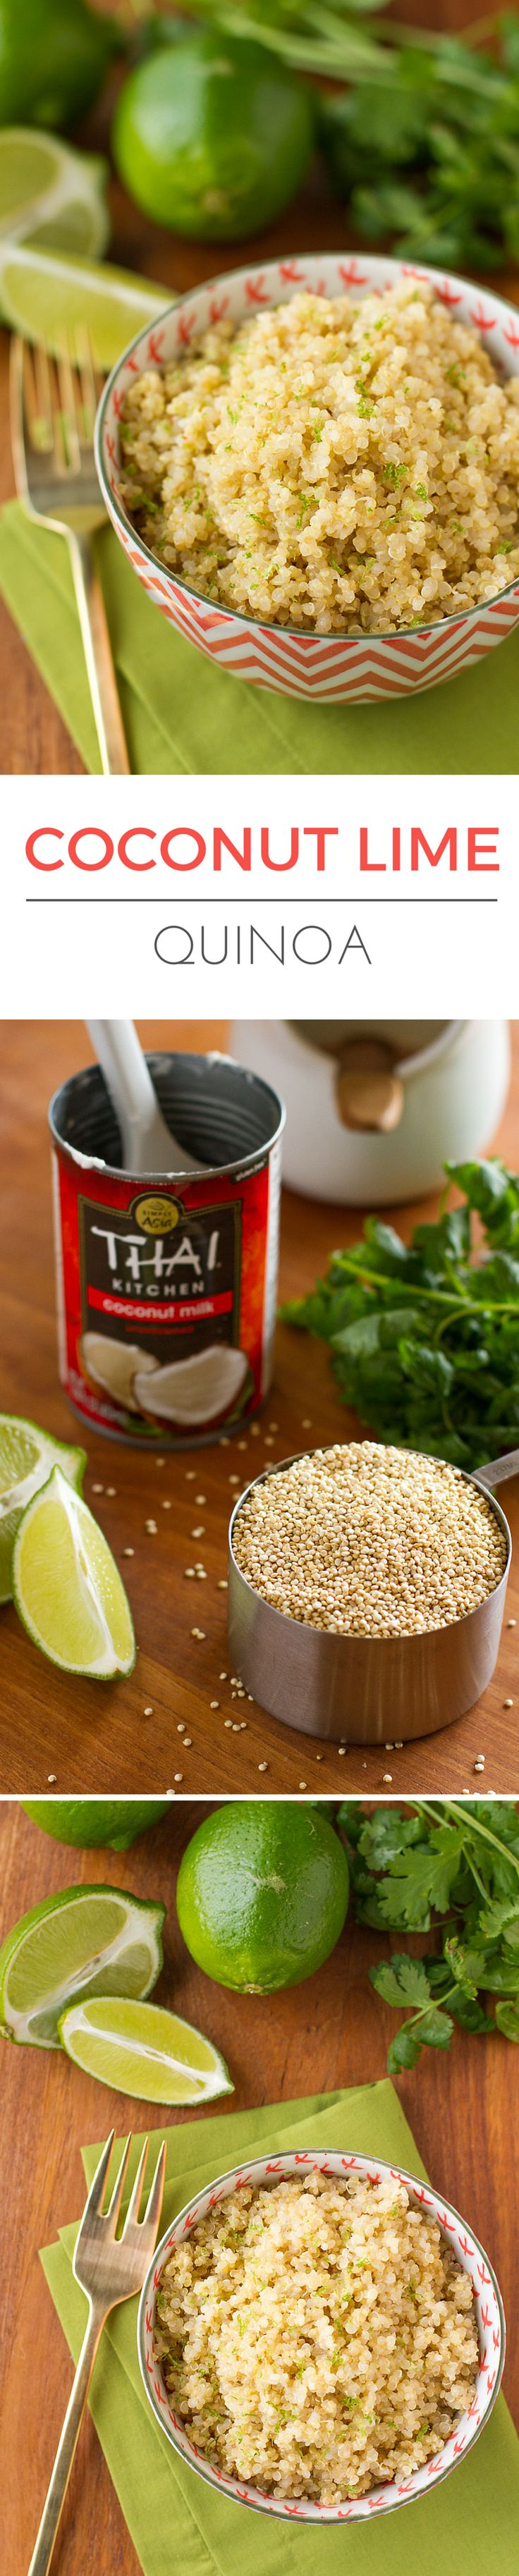 Coconut Lime Quinoa -- 3 ingredients use your rice cooker to make this delicious quinoa recipe